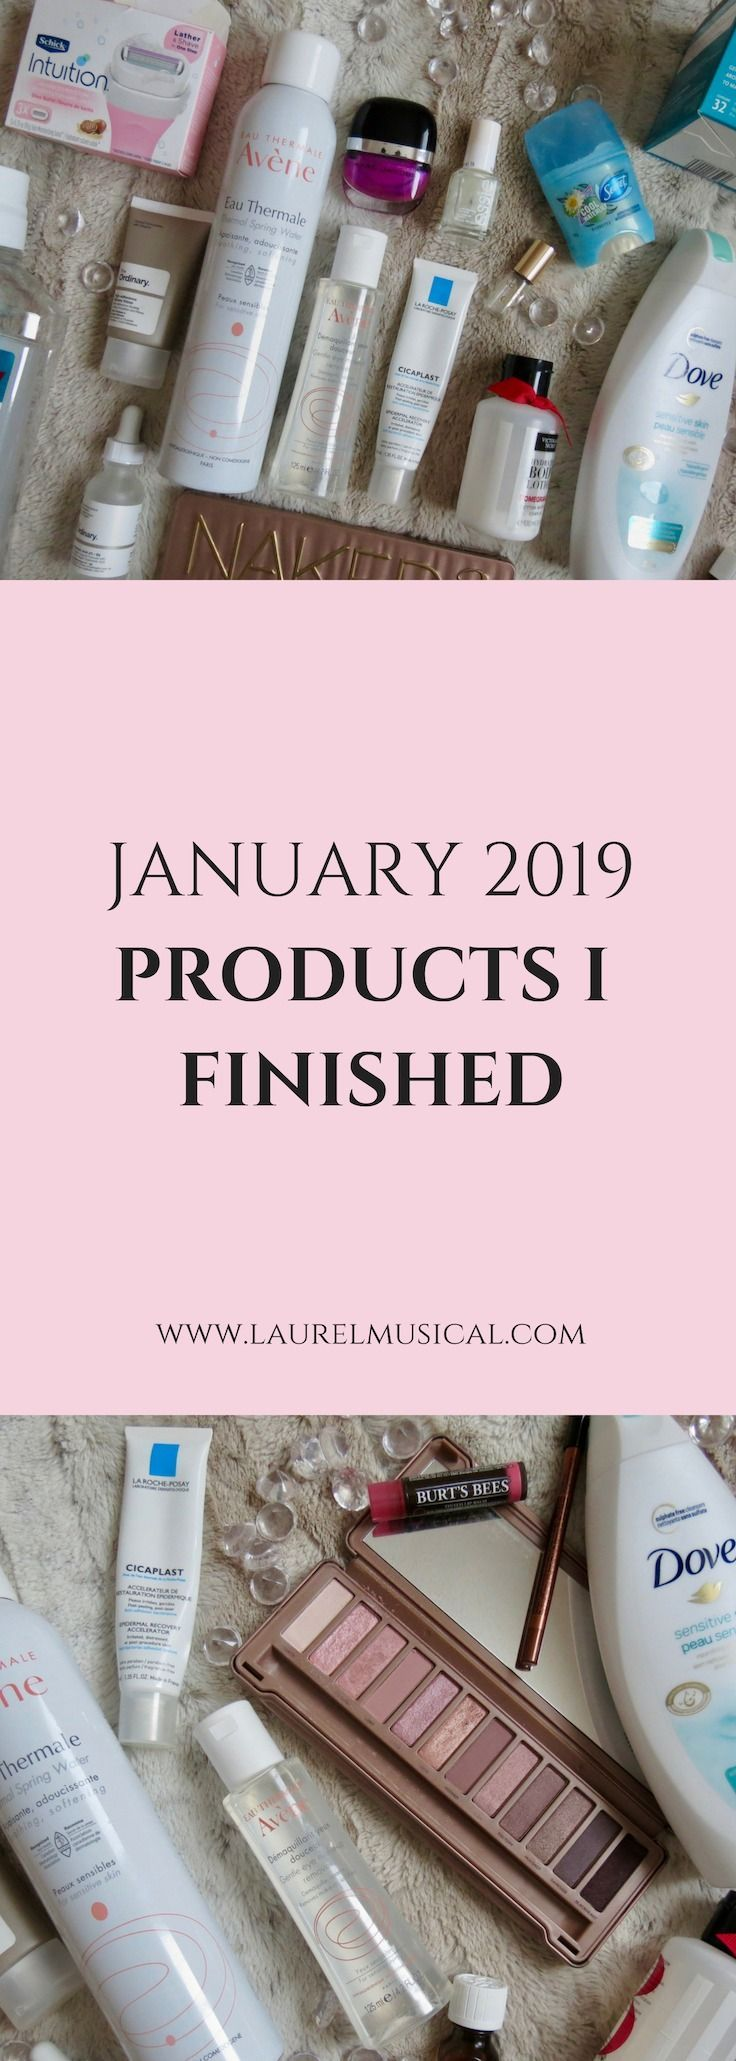 Another year begins and the beauty products keep compiling